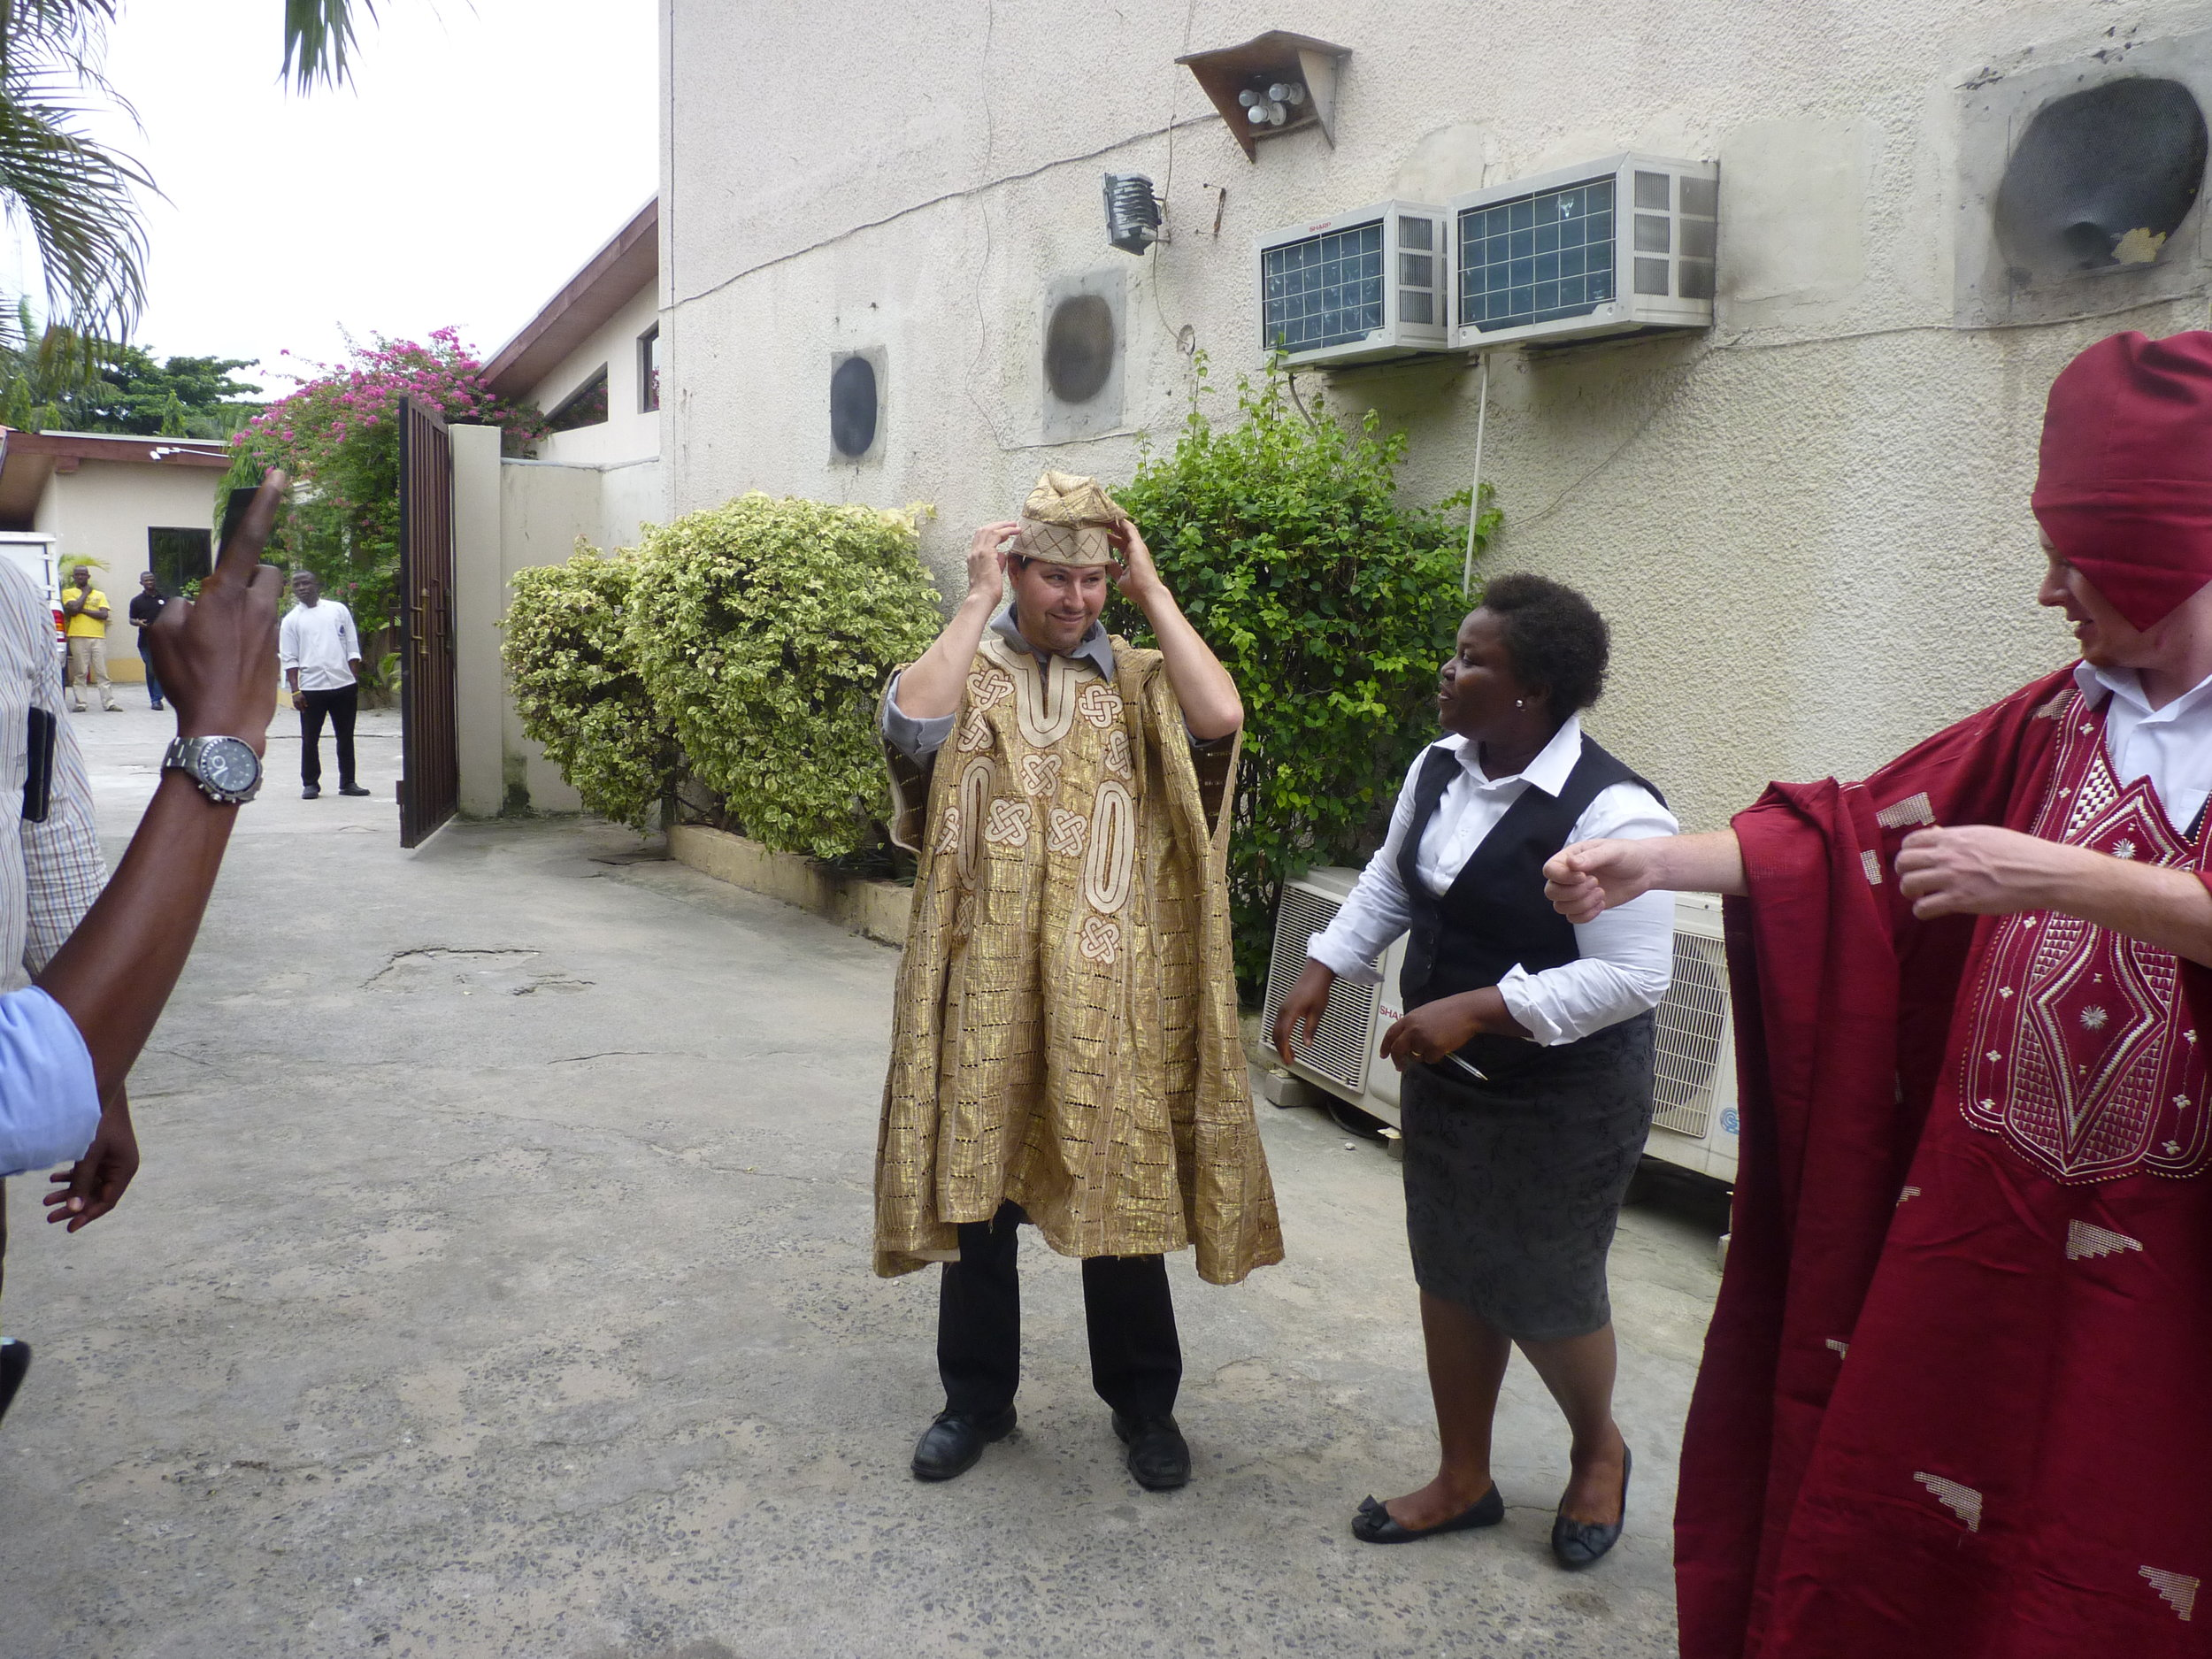 As ever, we get to try on traditional clothing on almost every trip.